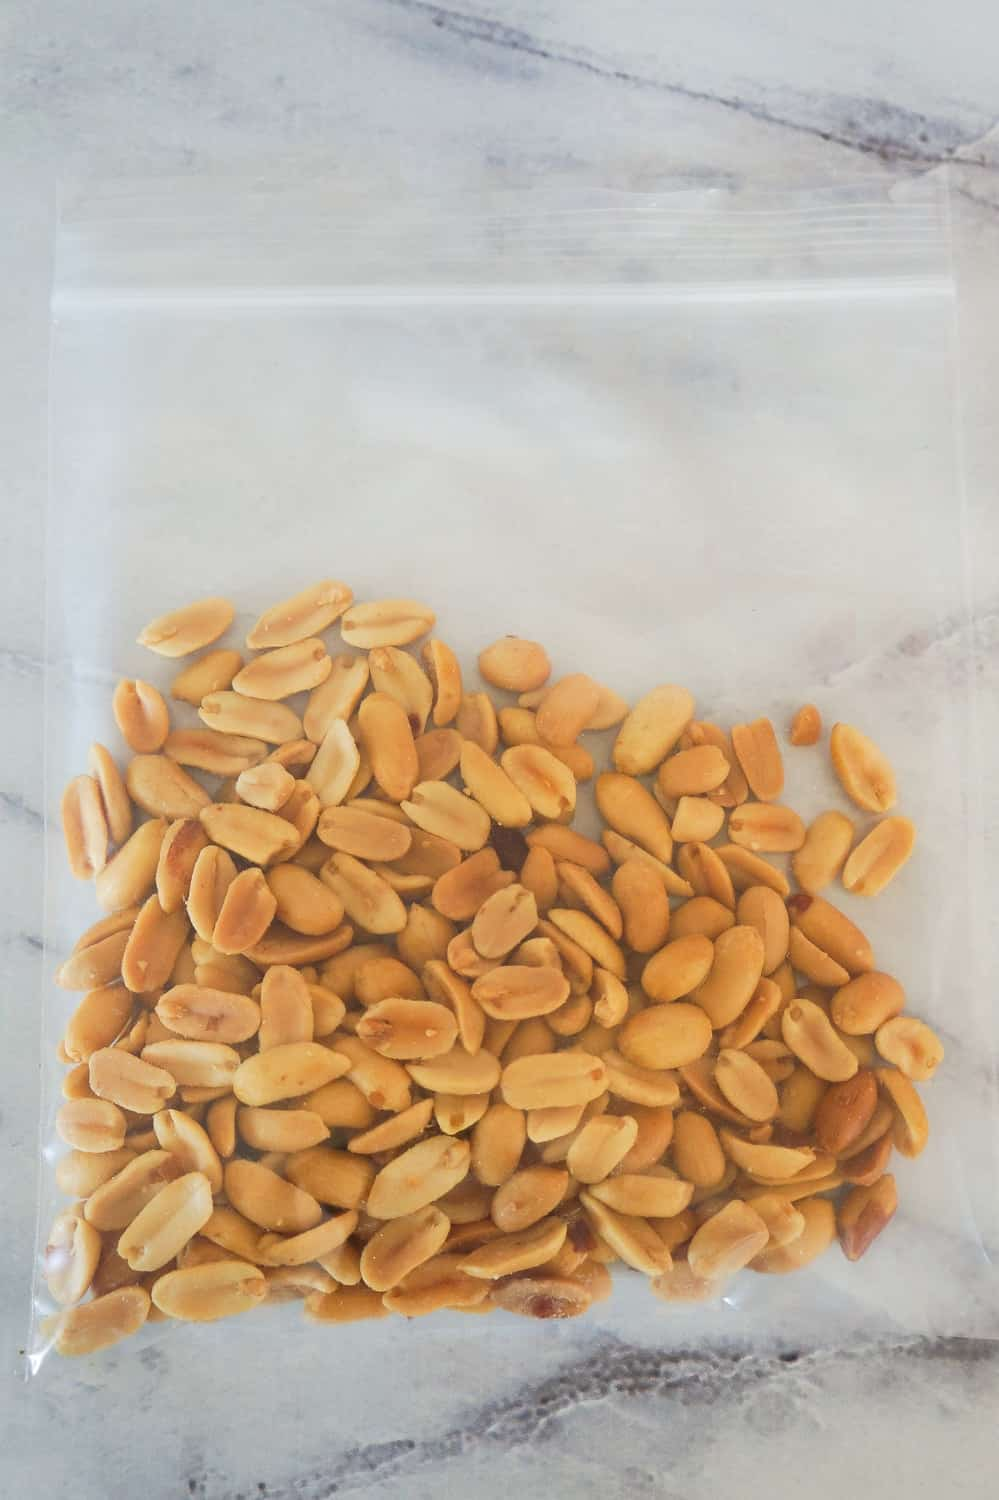 salted peanuts in a Ziploc bag